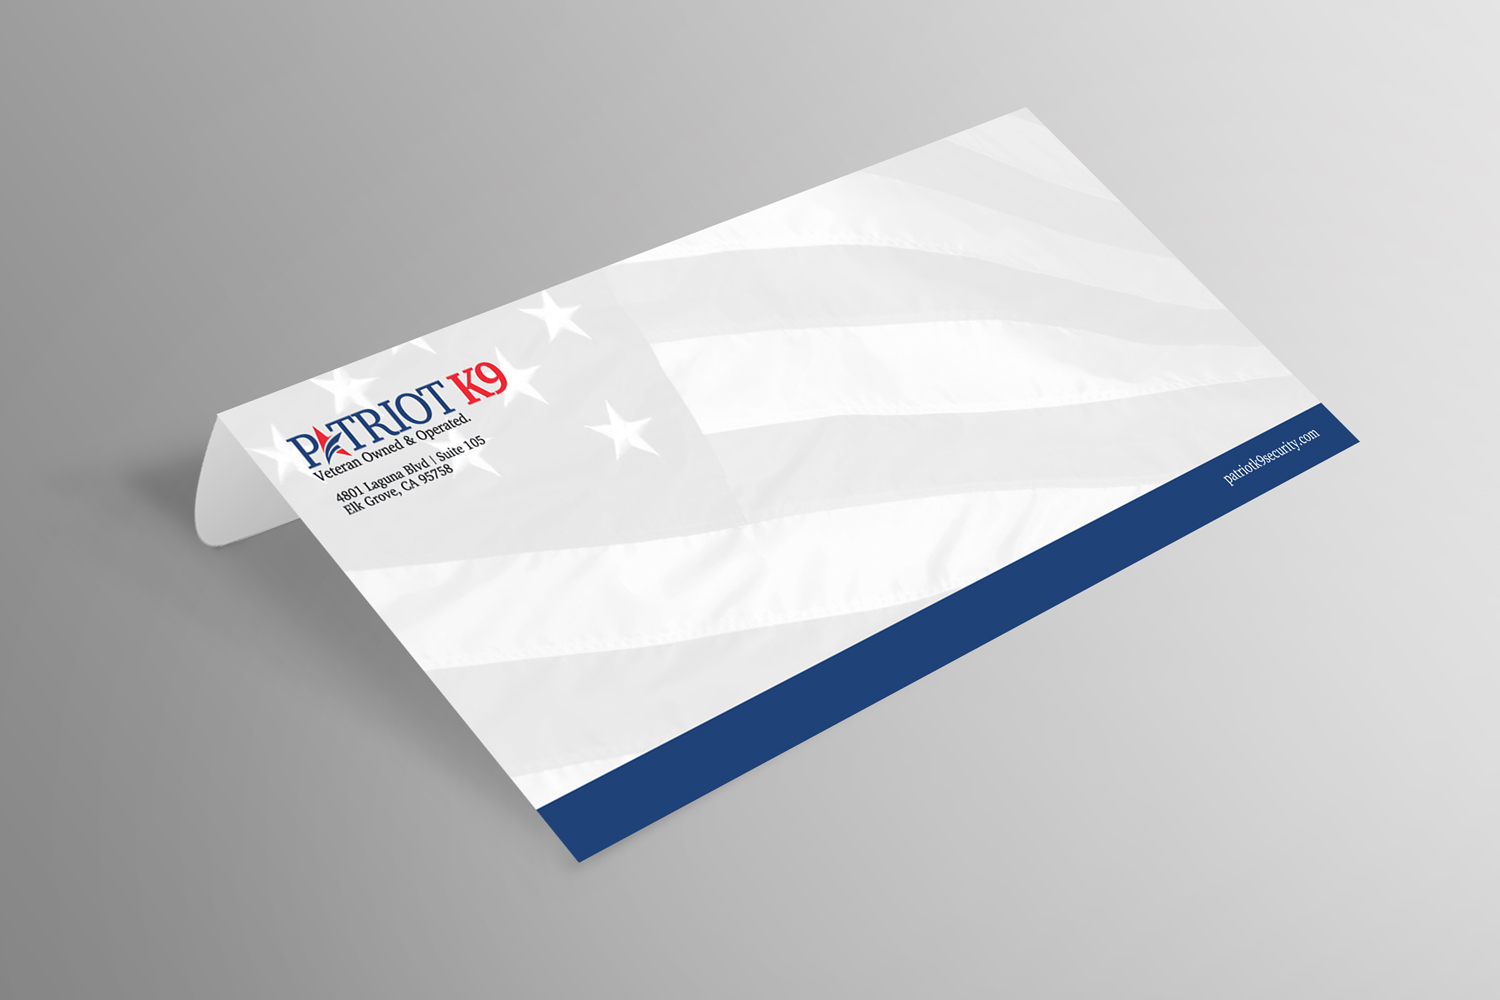 Envelope - Patriot K9 Brand Collateral Design Ninjaz